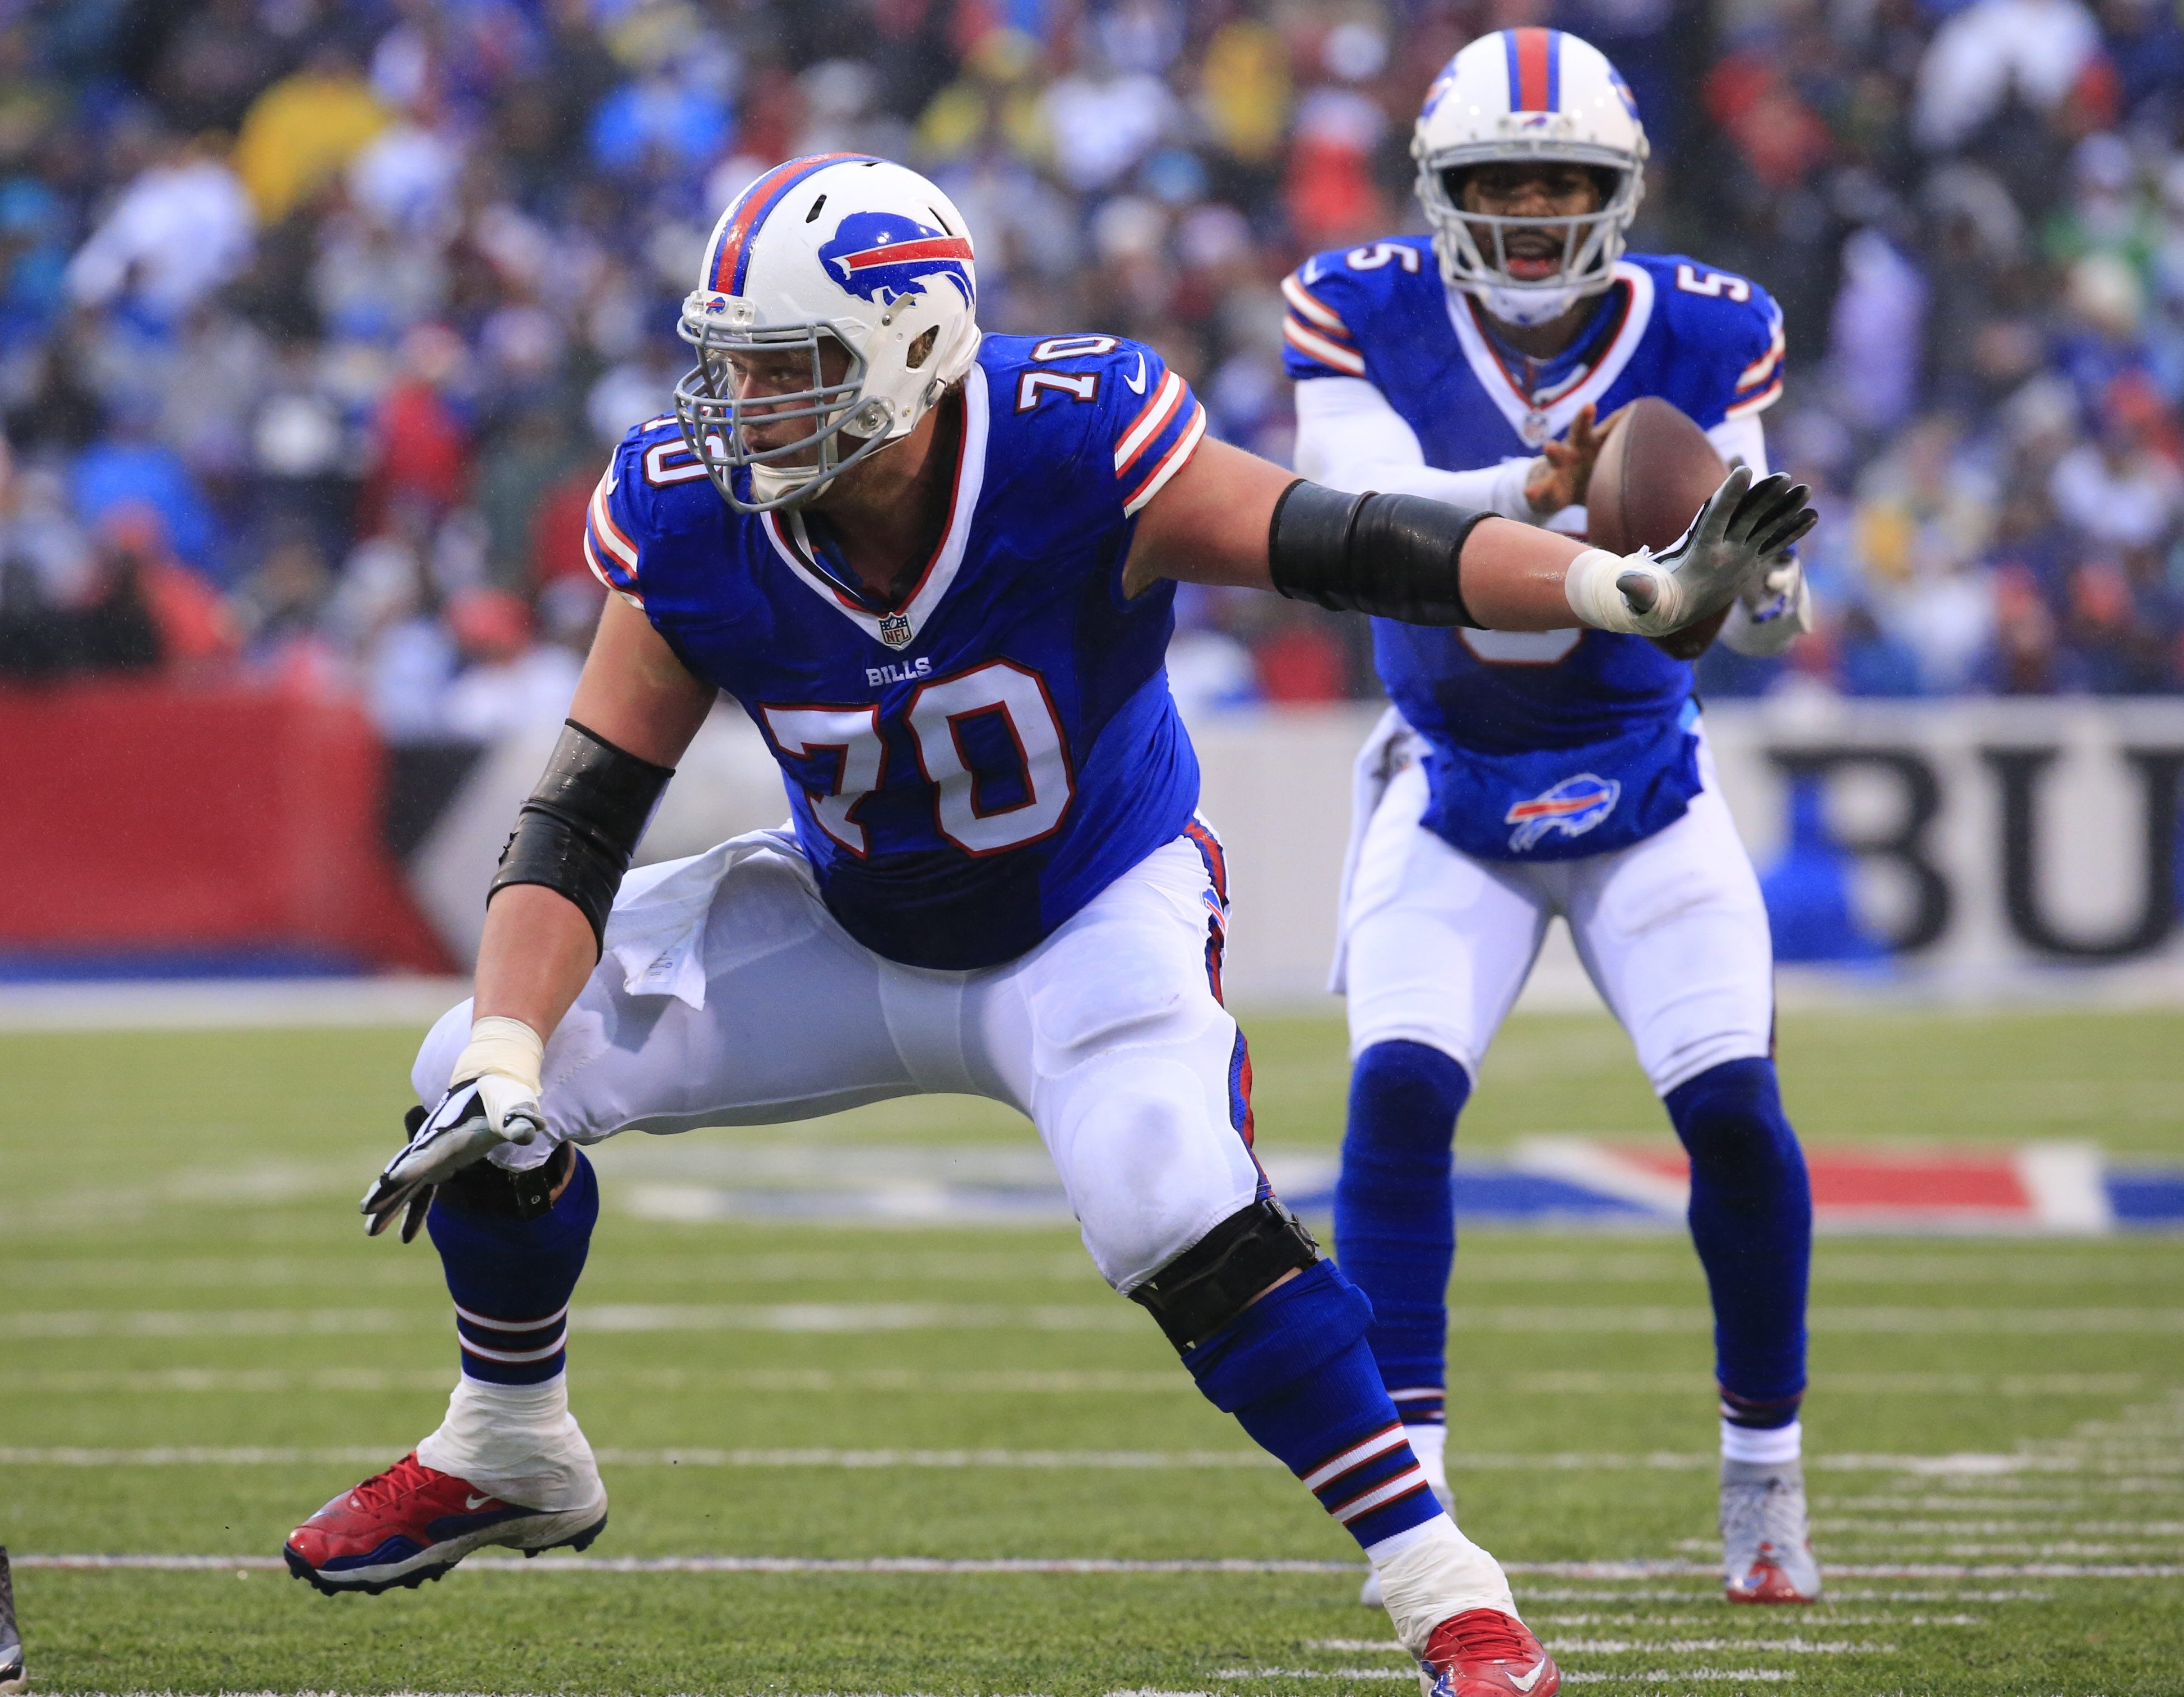 Bills center Eric Wood and quarterback Tyrod Taylor will be appearing in their first Pro Bowl and will find out on Wednesday night if they are on the same team.